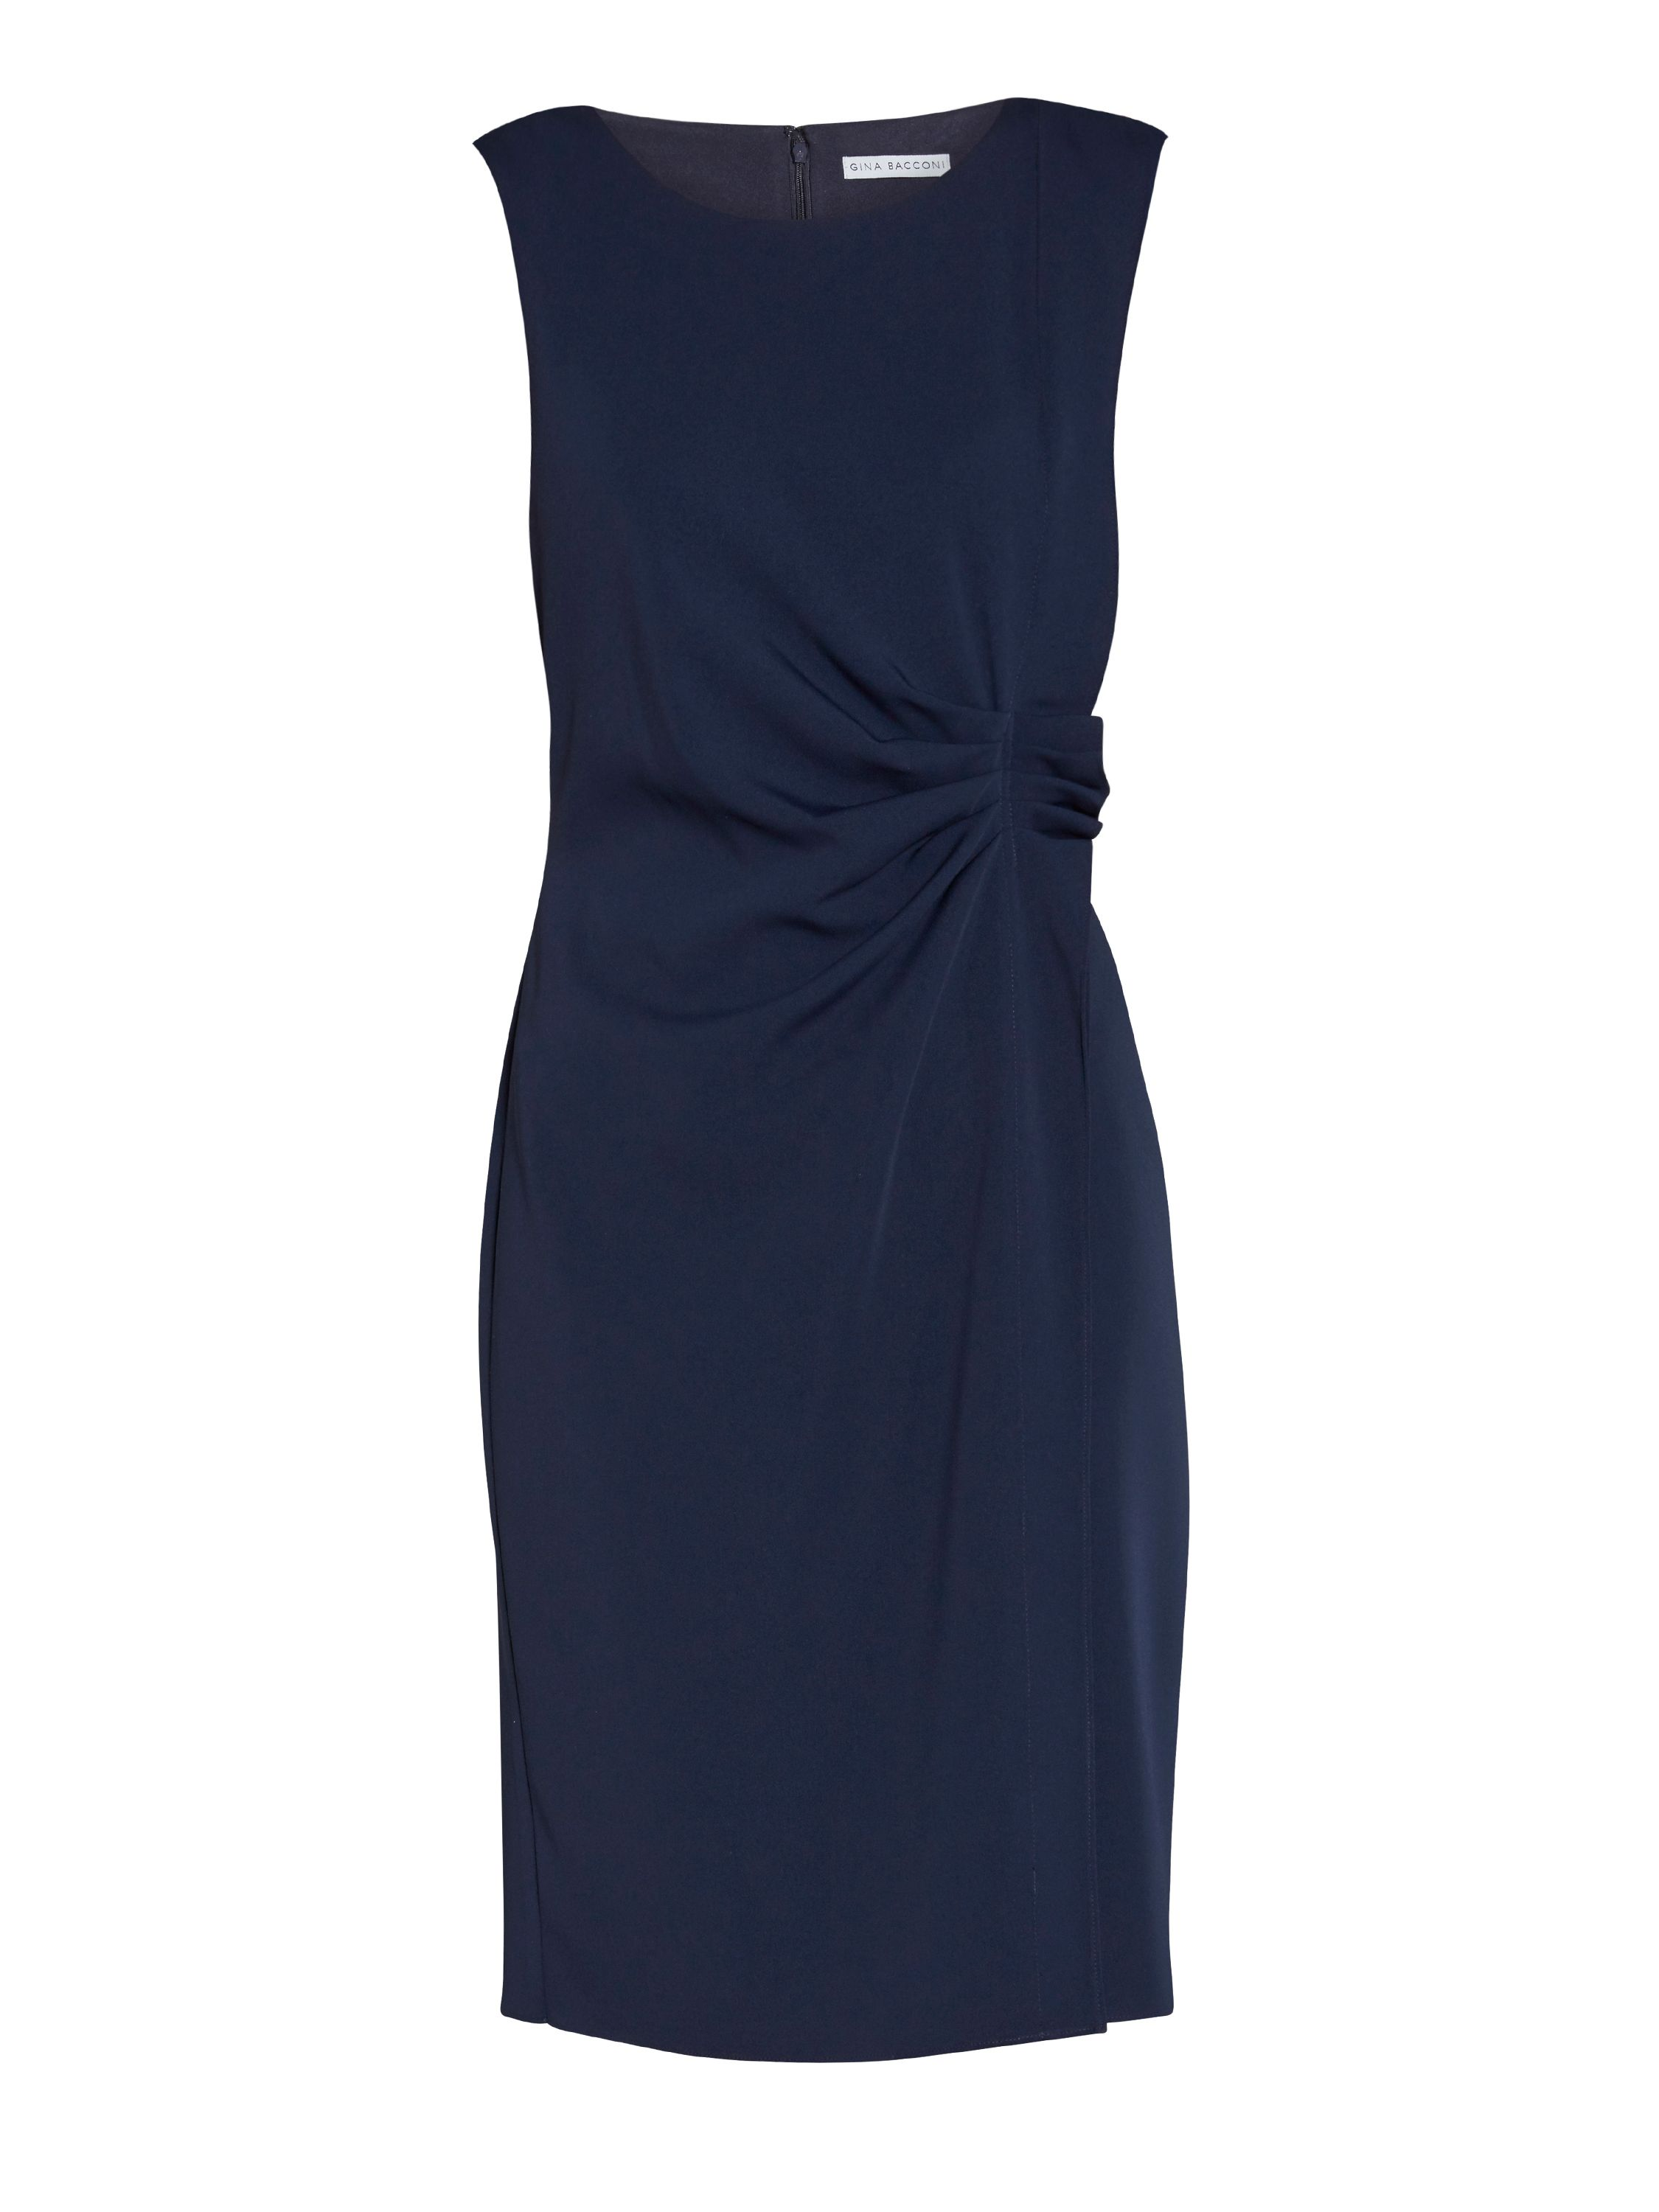 Gina Bacconi Moss crepe dress with waist detail, Blue